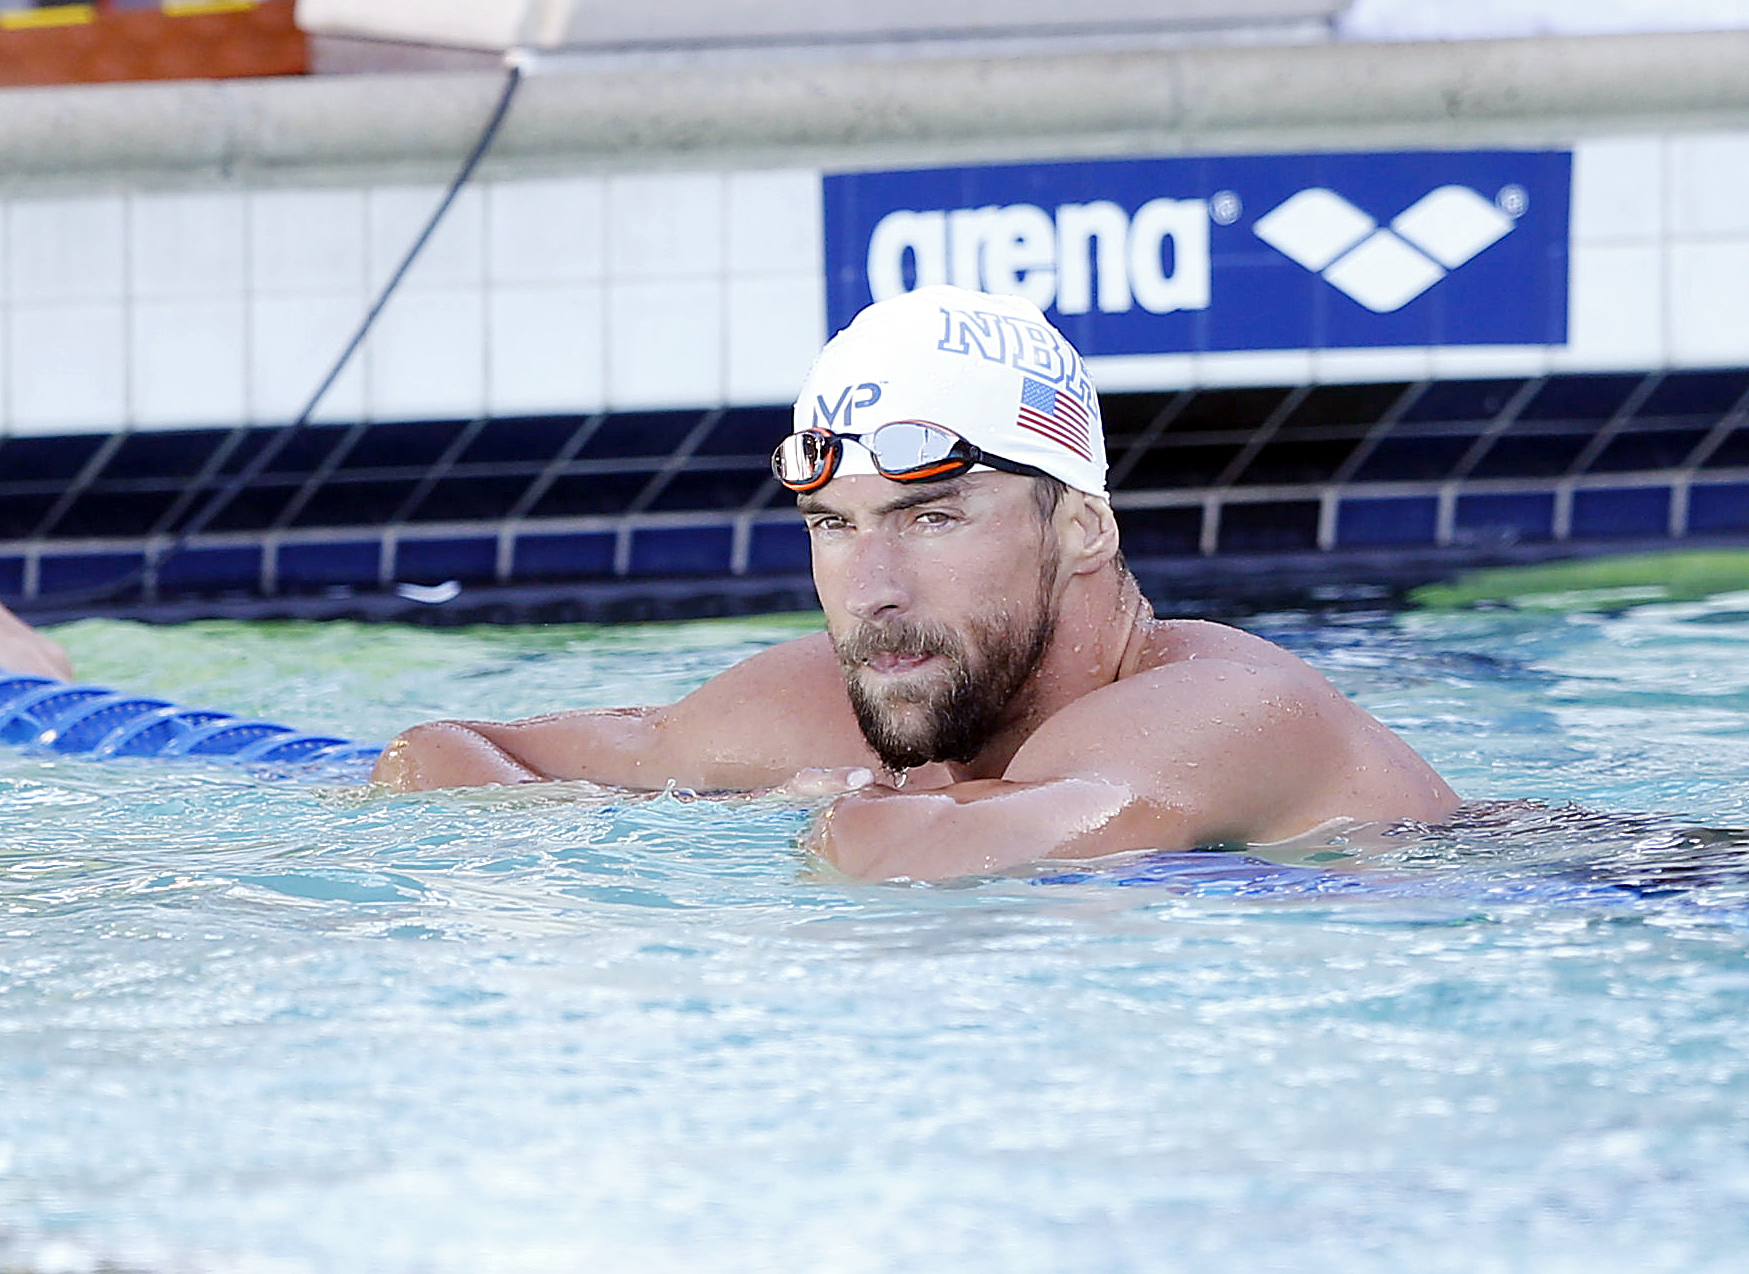 Michael Phelps  won the Men's 200IM championship in a time of 1:59.39 during the Championship Finals of  at the George F. Haines International Swim Center, on Jun 21, 2015.